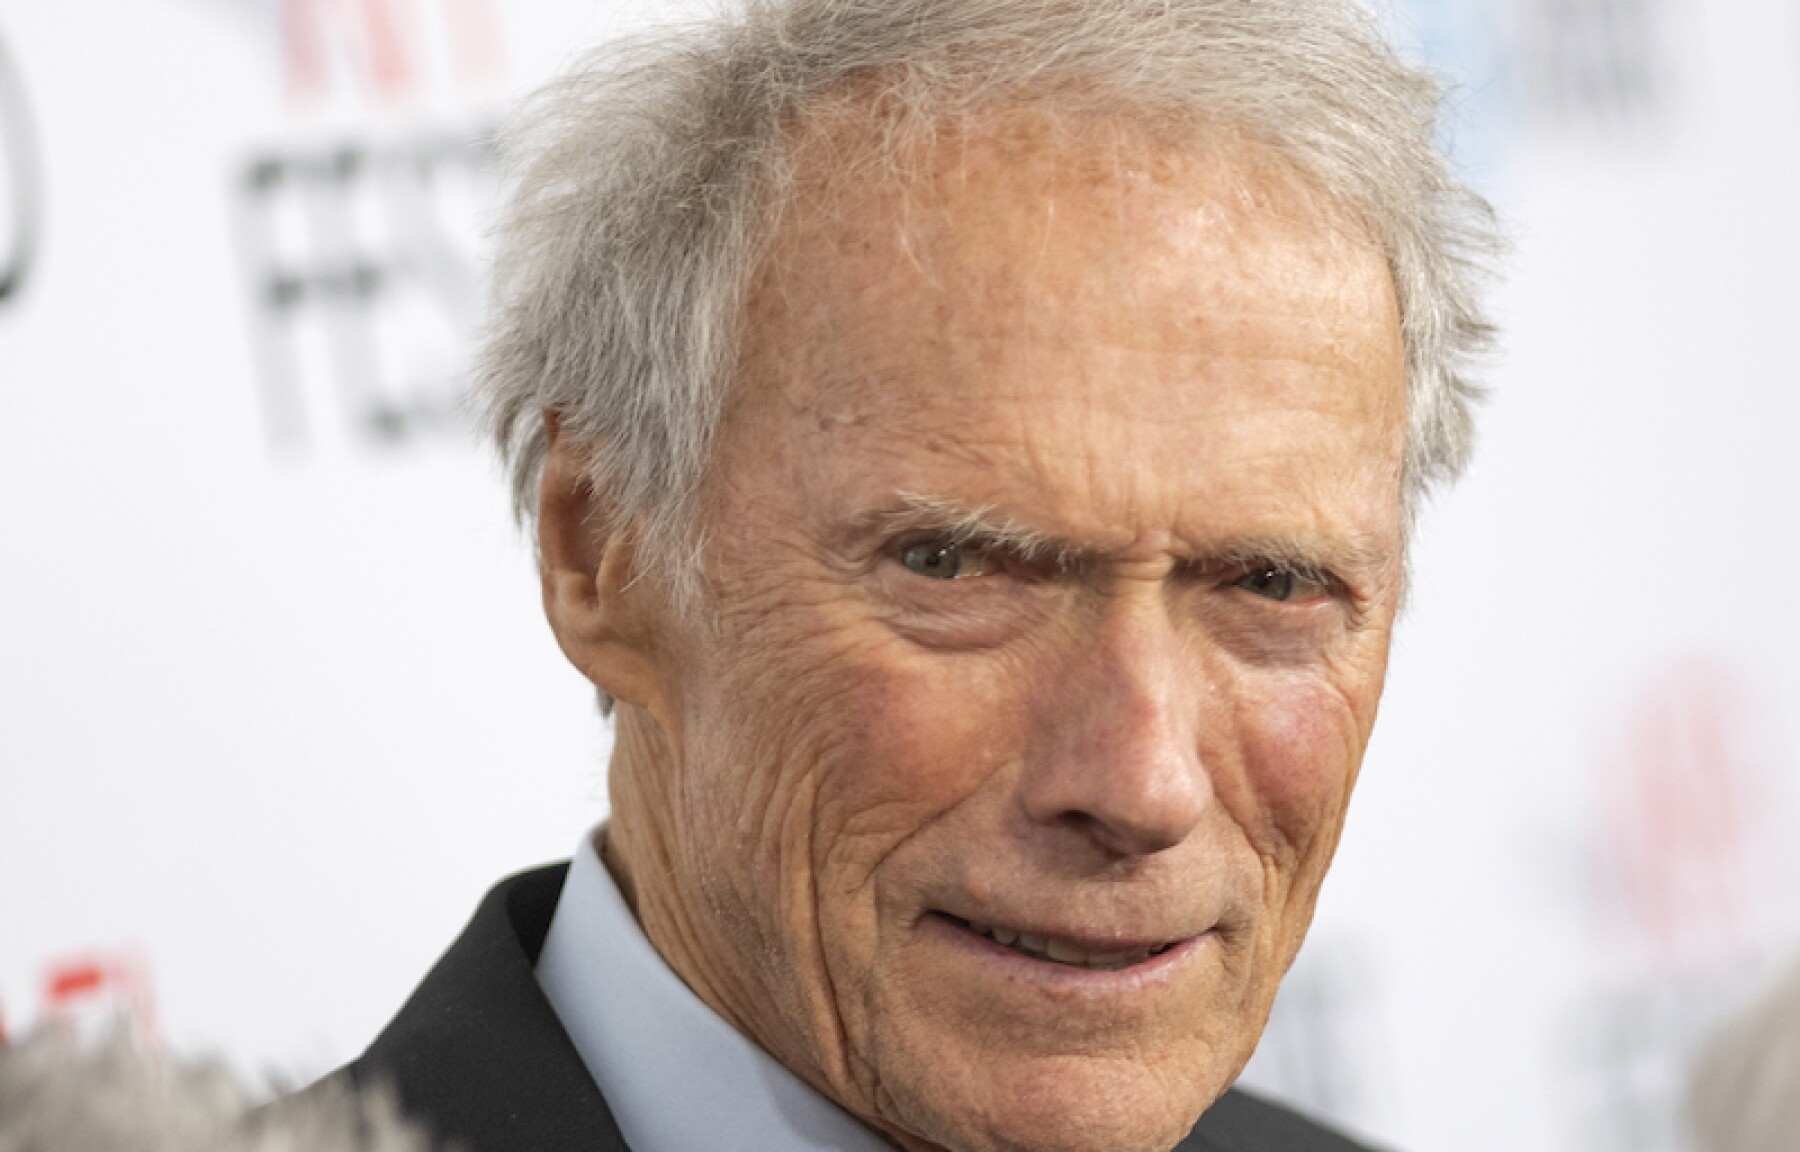 Clint Eastwood's 90th birthday